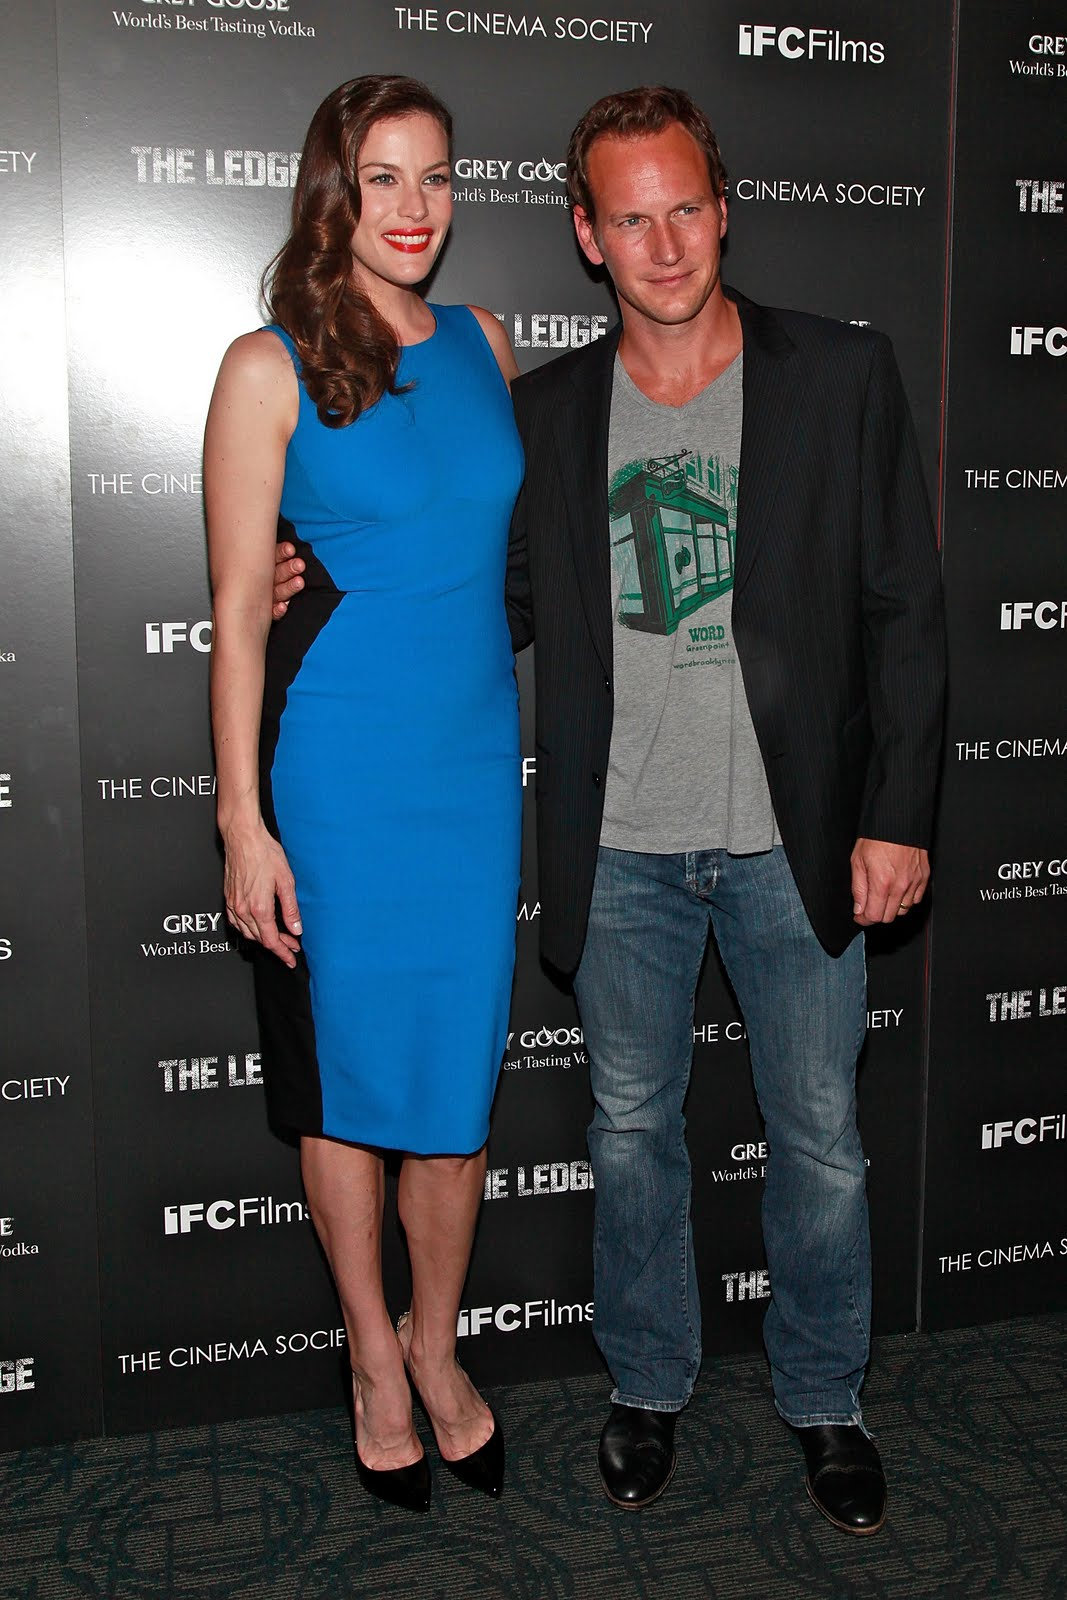 http://3.bp.blogspot.com/-hIS7x5Ow1uk/TkLXJk803-I/AAAAAAAAJfU/w6r0GEYxJ8Y/s1600/Liv_Tyler_attends_a_screening_of_The_Ledge_in_New_York_City_June_21_2011_092_123_387lo.jpg